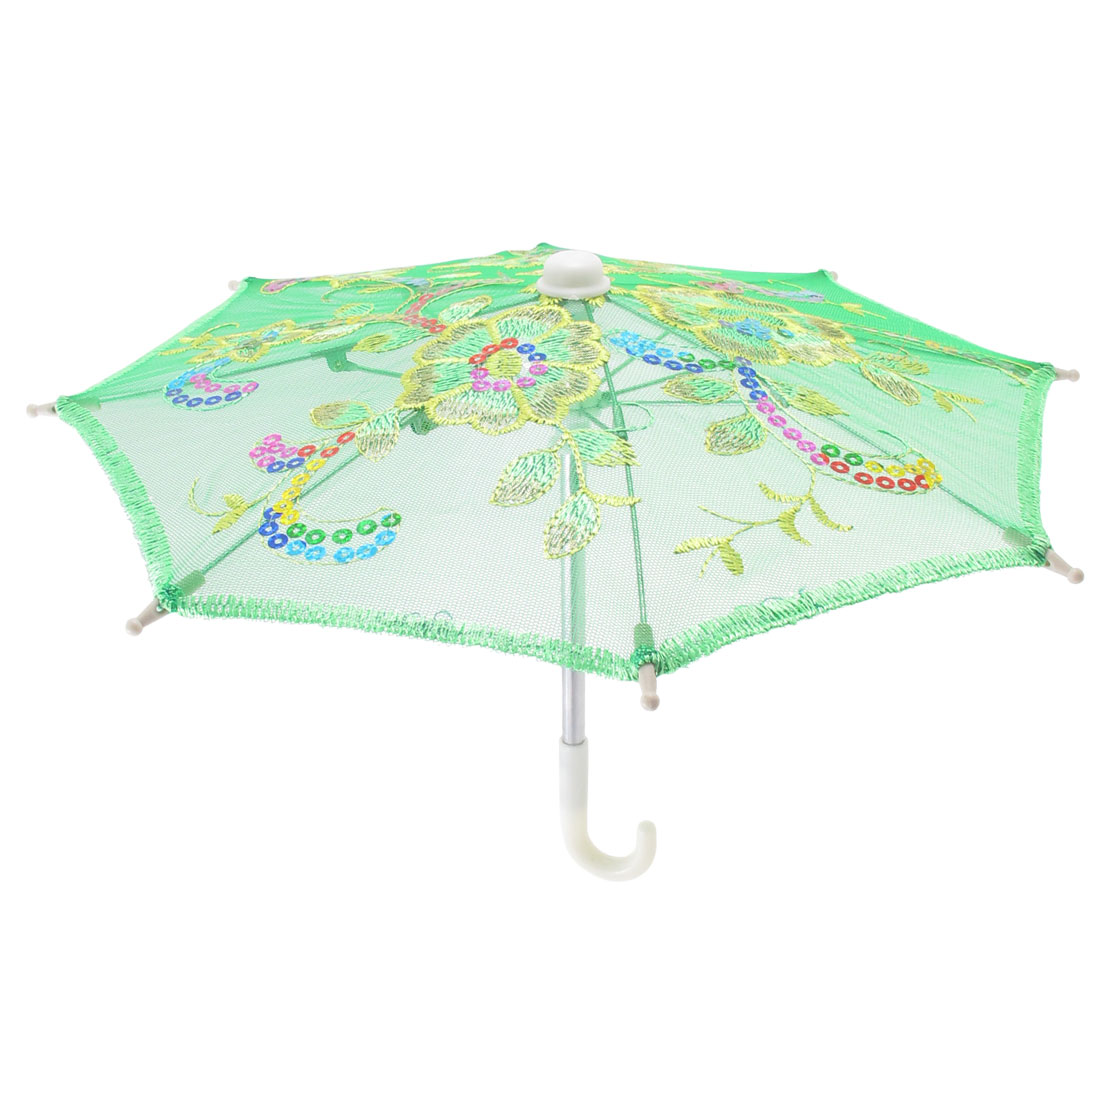 Green Embroider Flower Pattern Foldable Mini Lace Umbrella Parasol for Child